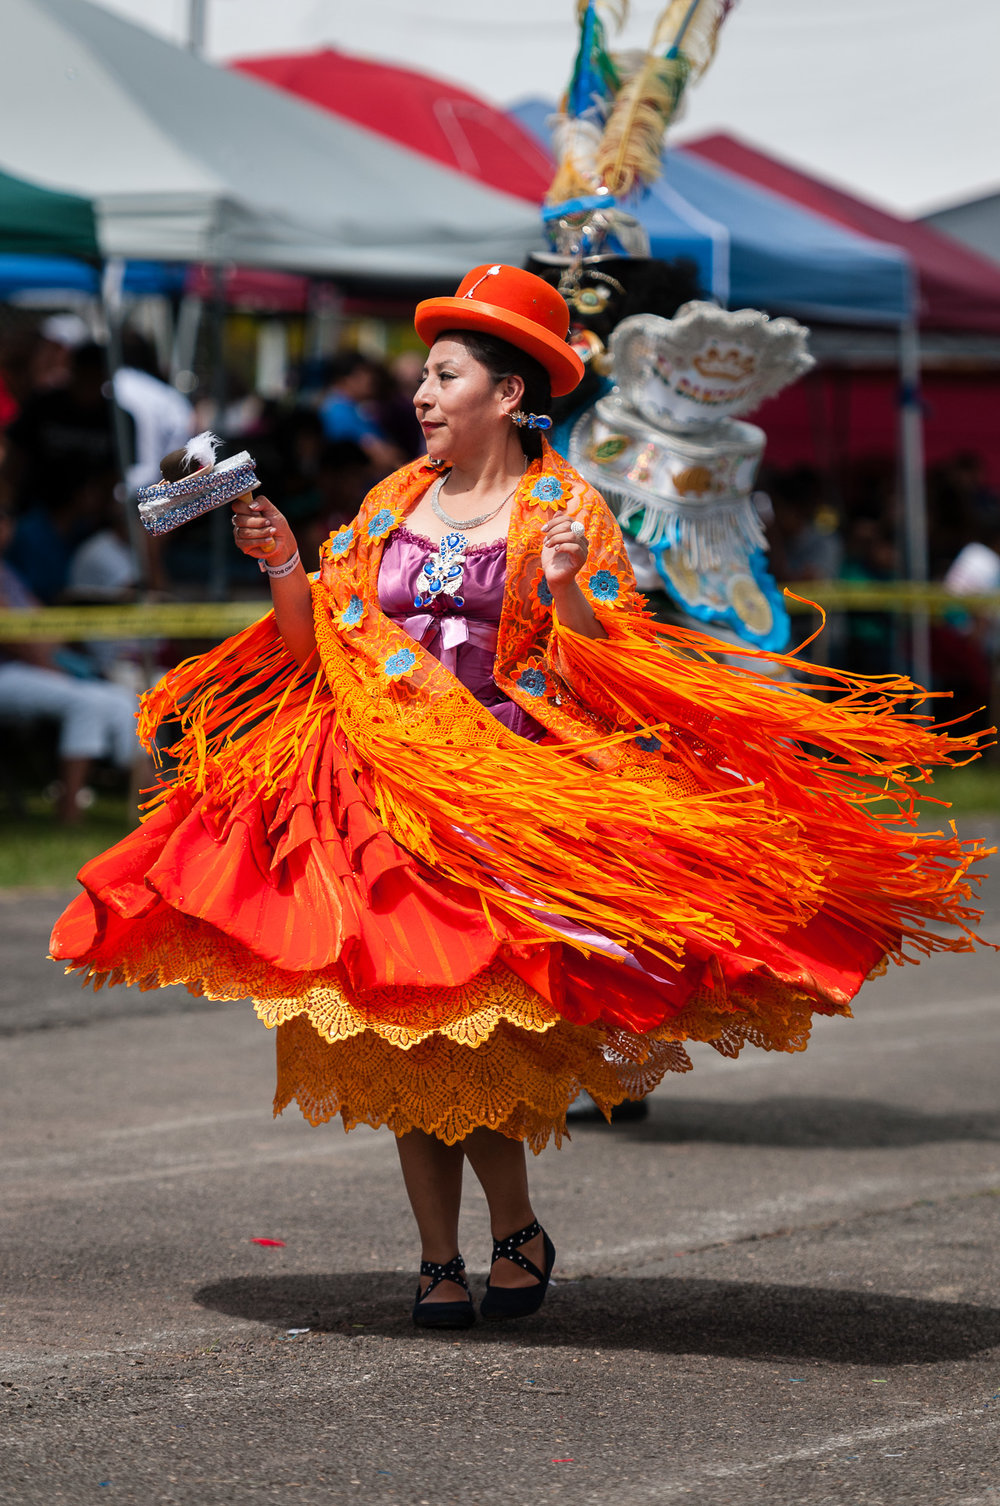 A performer from Embajadores del Folklore wore a beautiful flowing colorful dress while performing a Morenada dance.